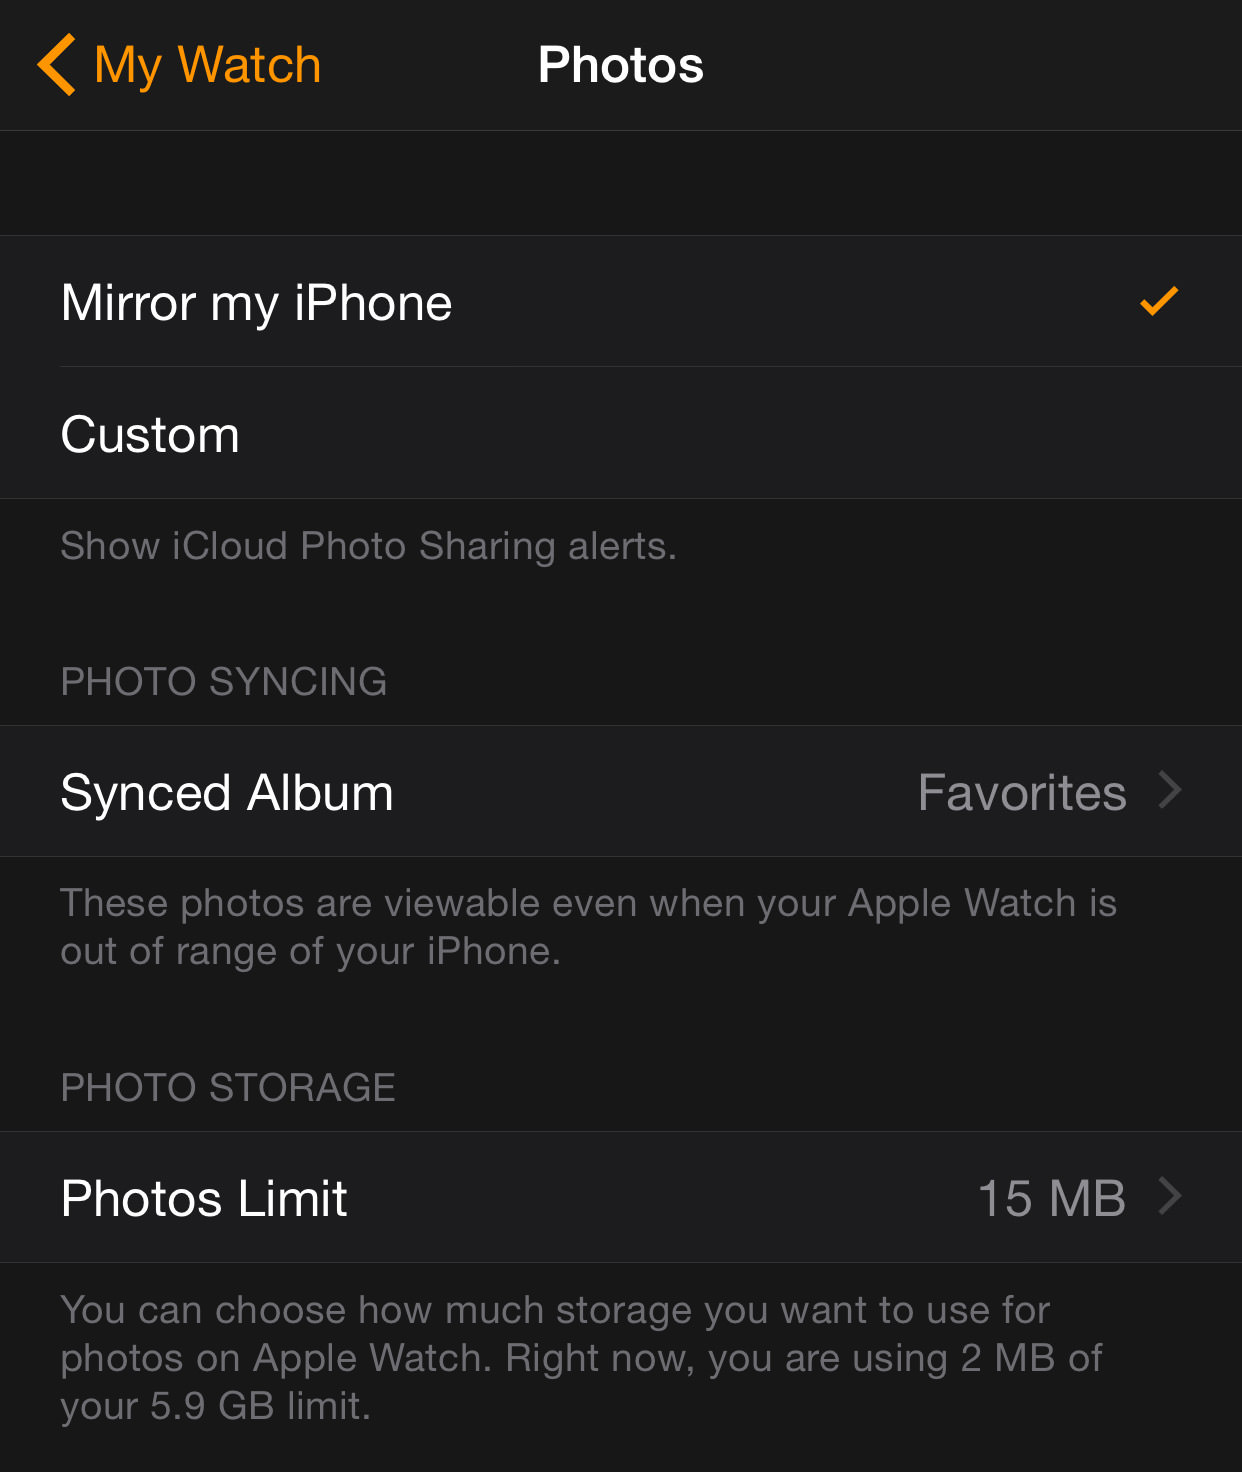 sync photos to apple watch